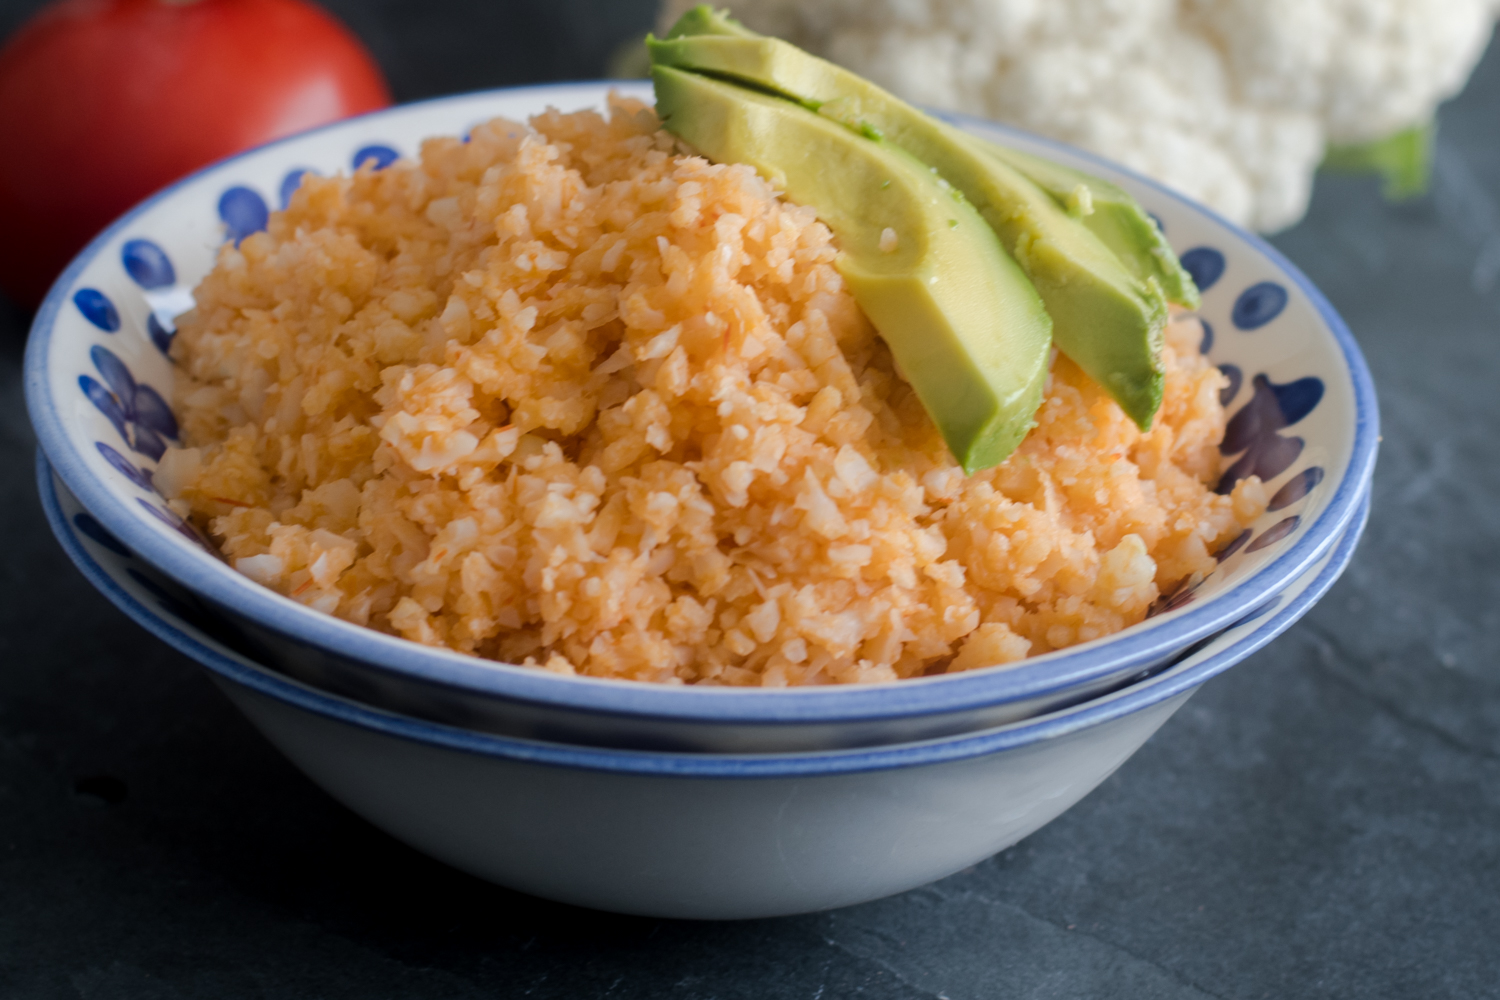 Inspired by the classic Mexican red rice, this low-carb and healthier version is made with cauliflower!